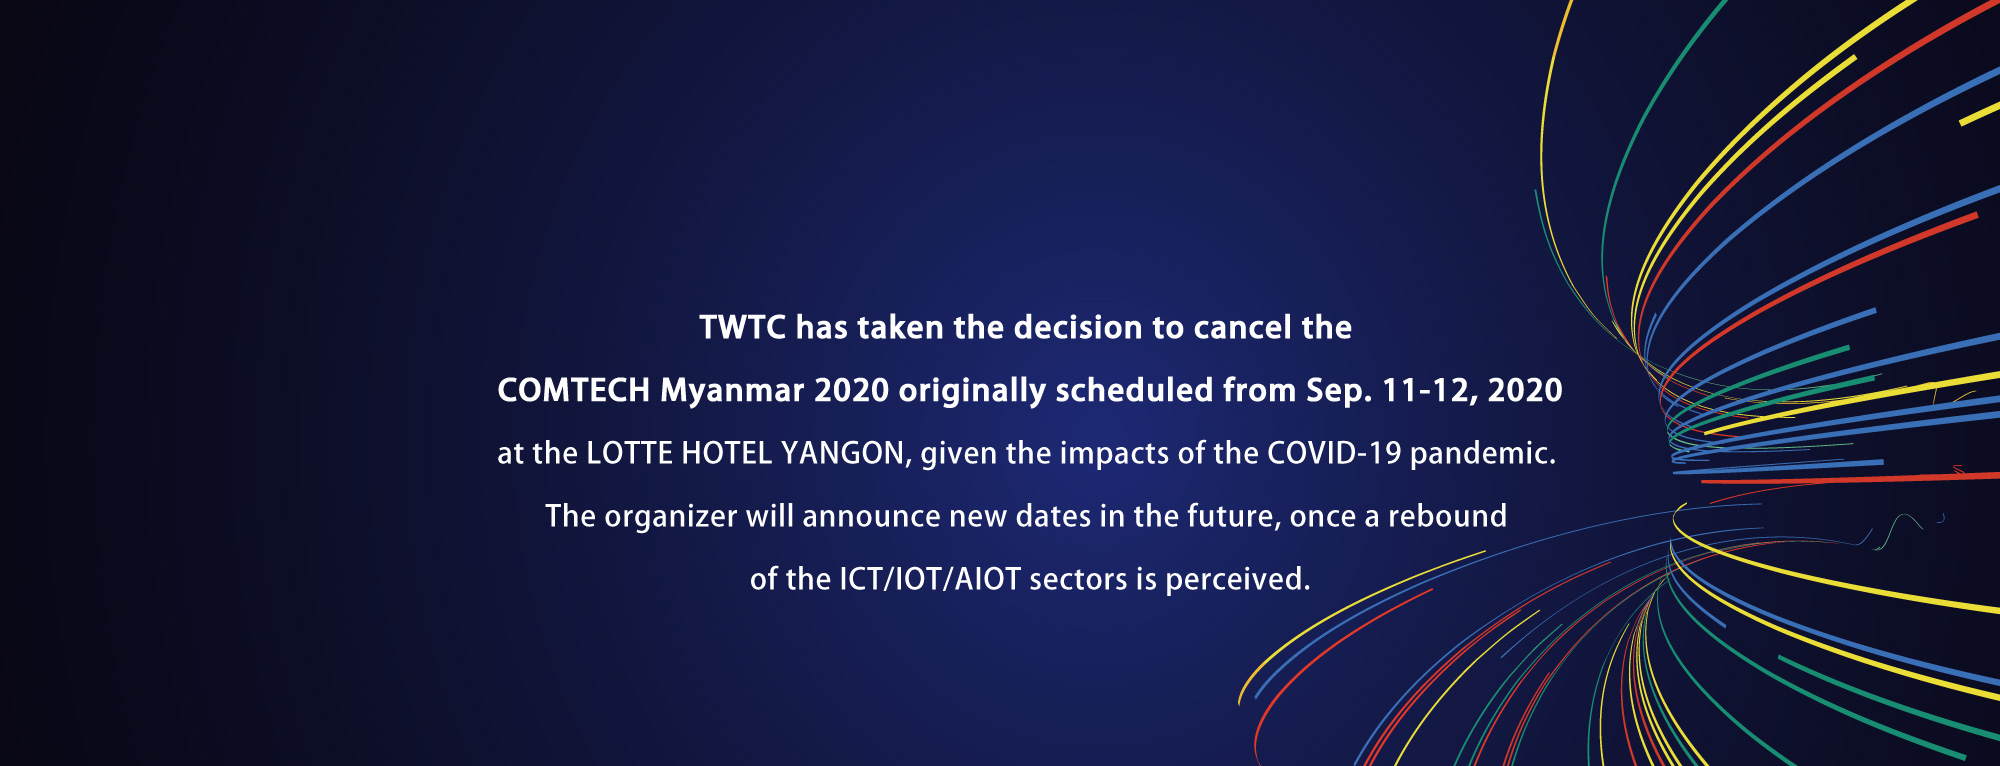 TWTC has taken the decision to cancel the COMTECH Myanmar 2020, given the impacts of the COVID-19 pandemic.